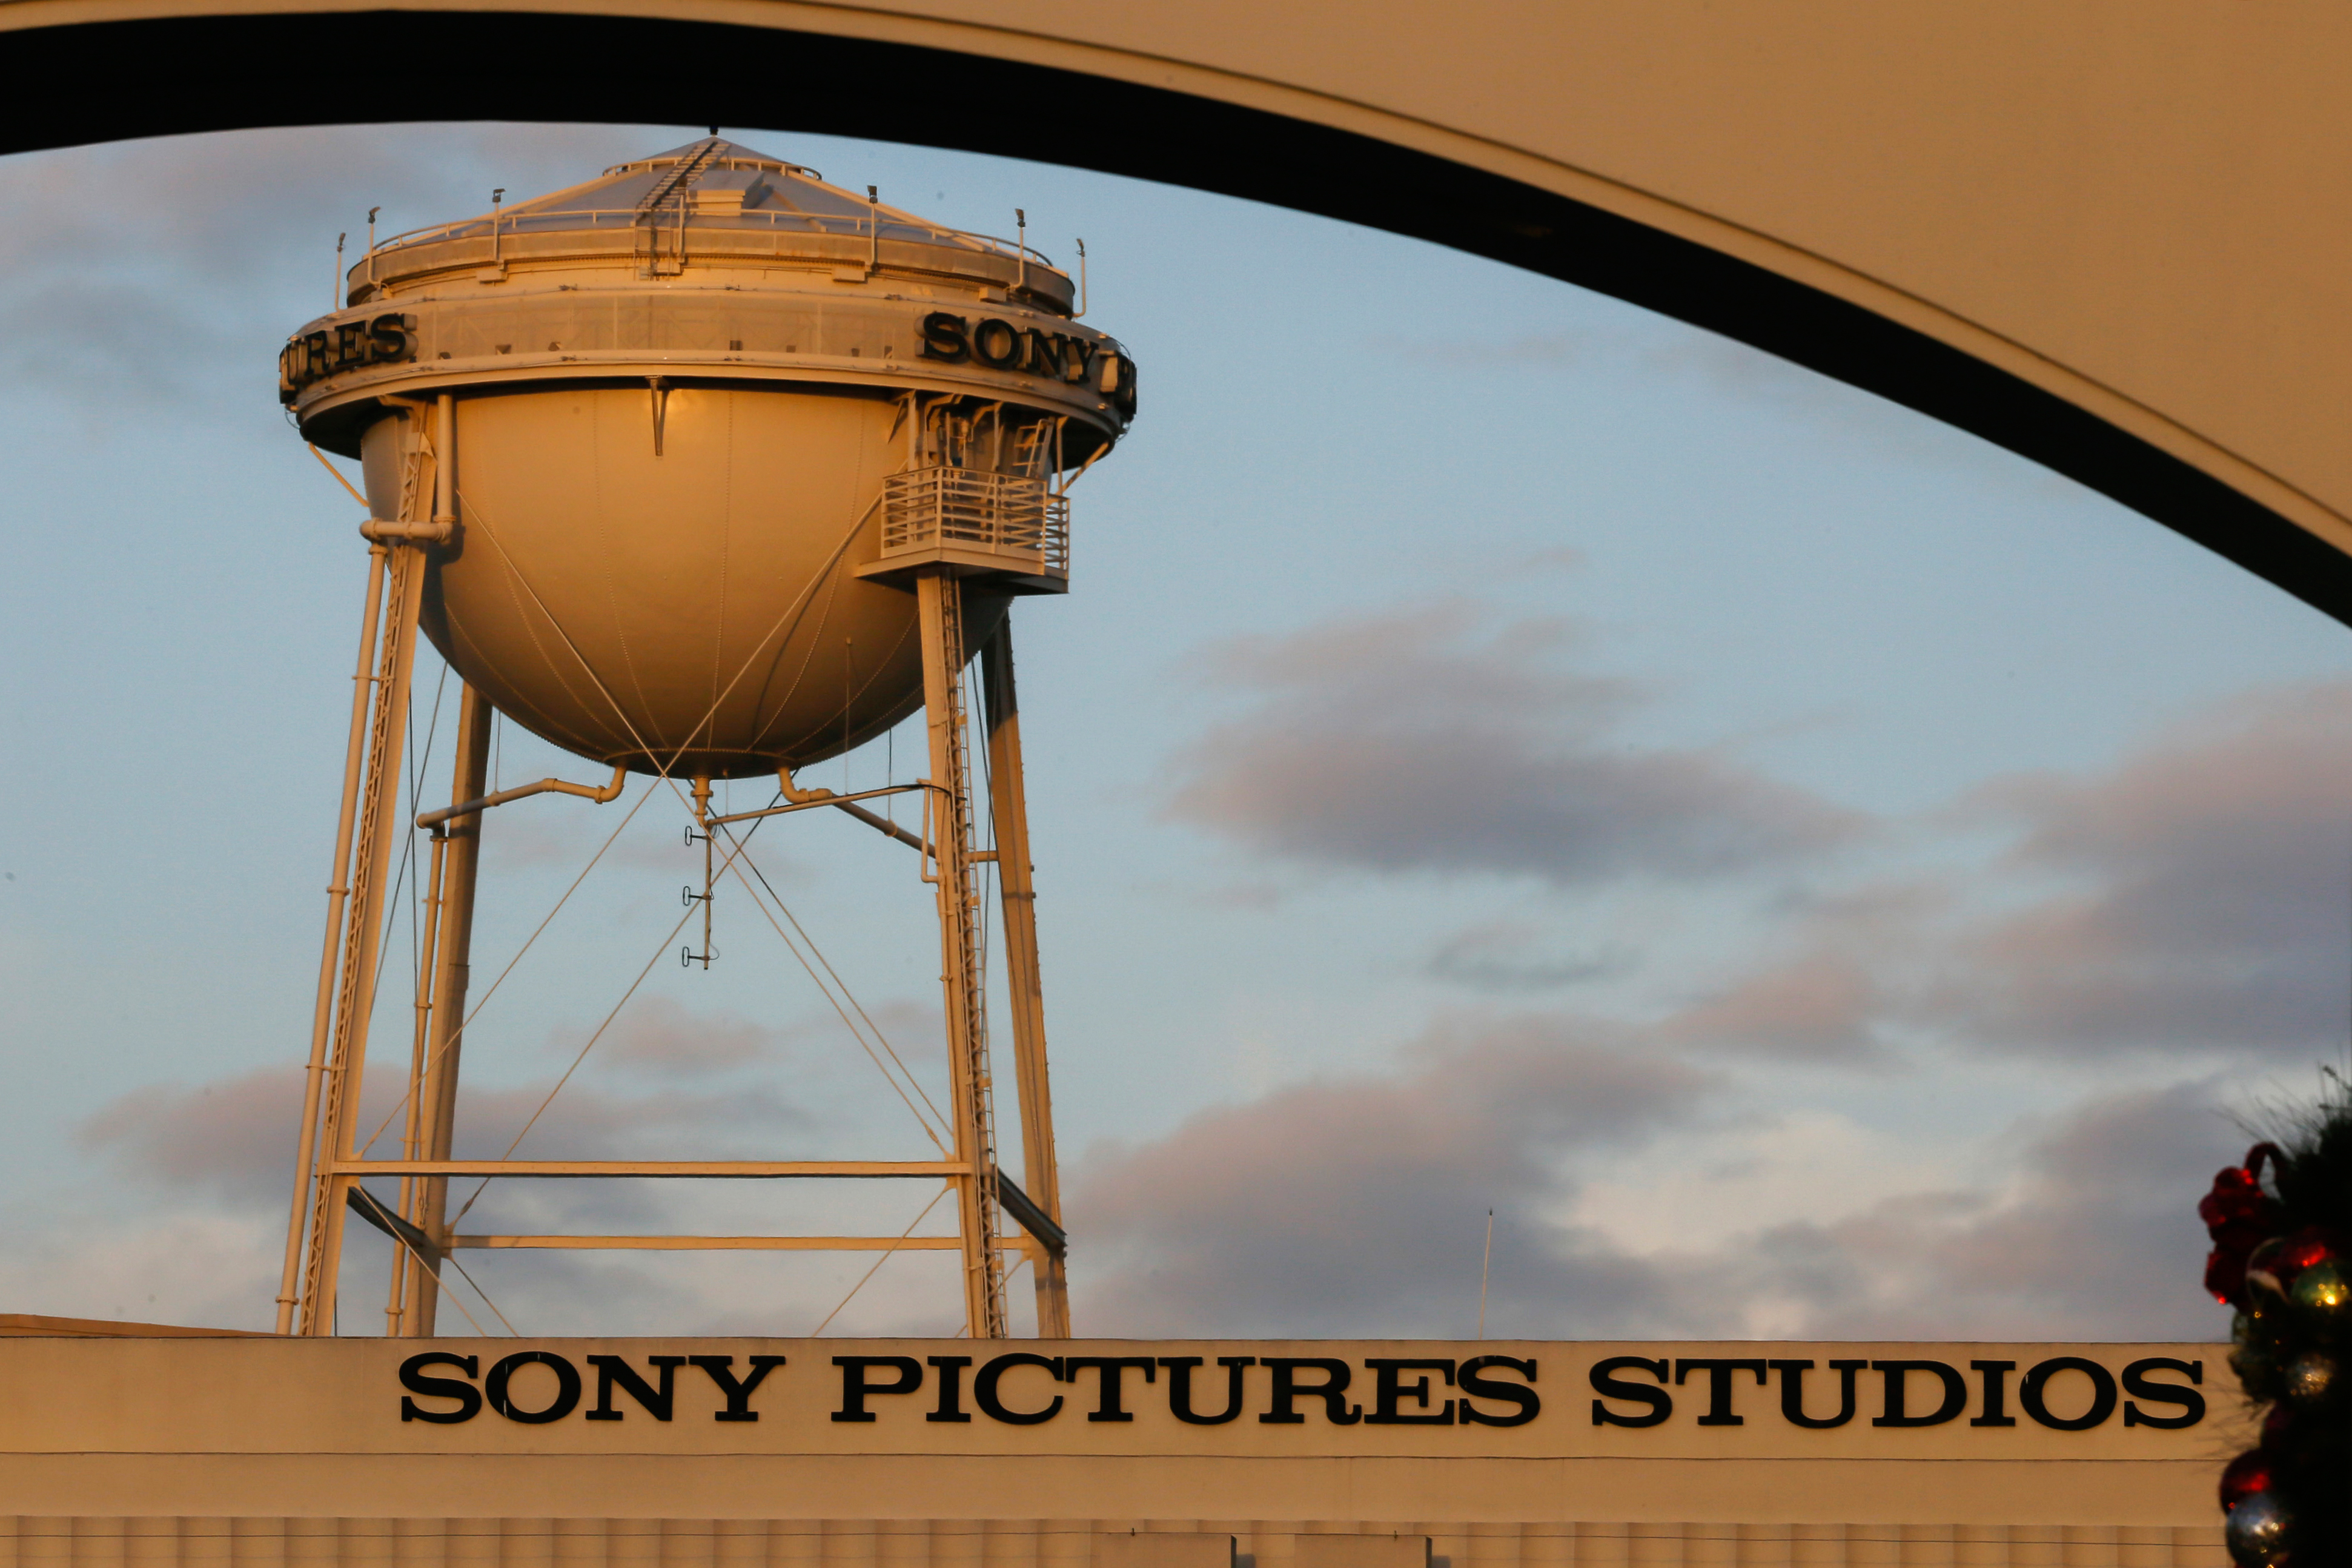 The water tower at the Sony Pictures Entertainment Inc. studios in Culver City, California.